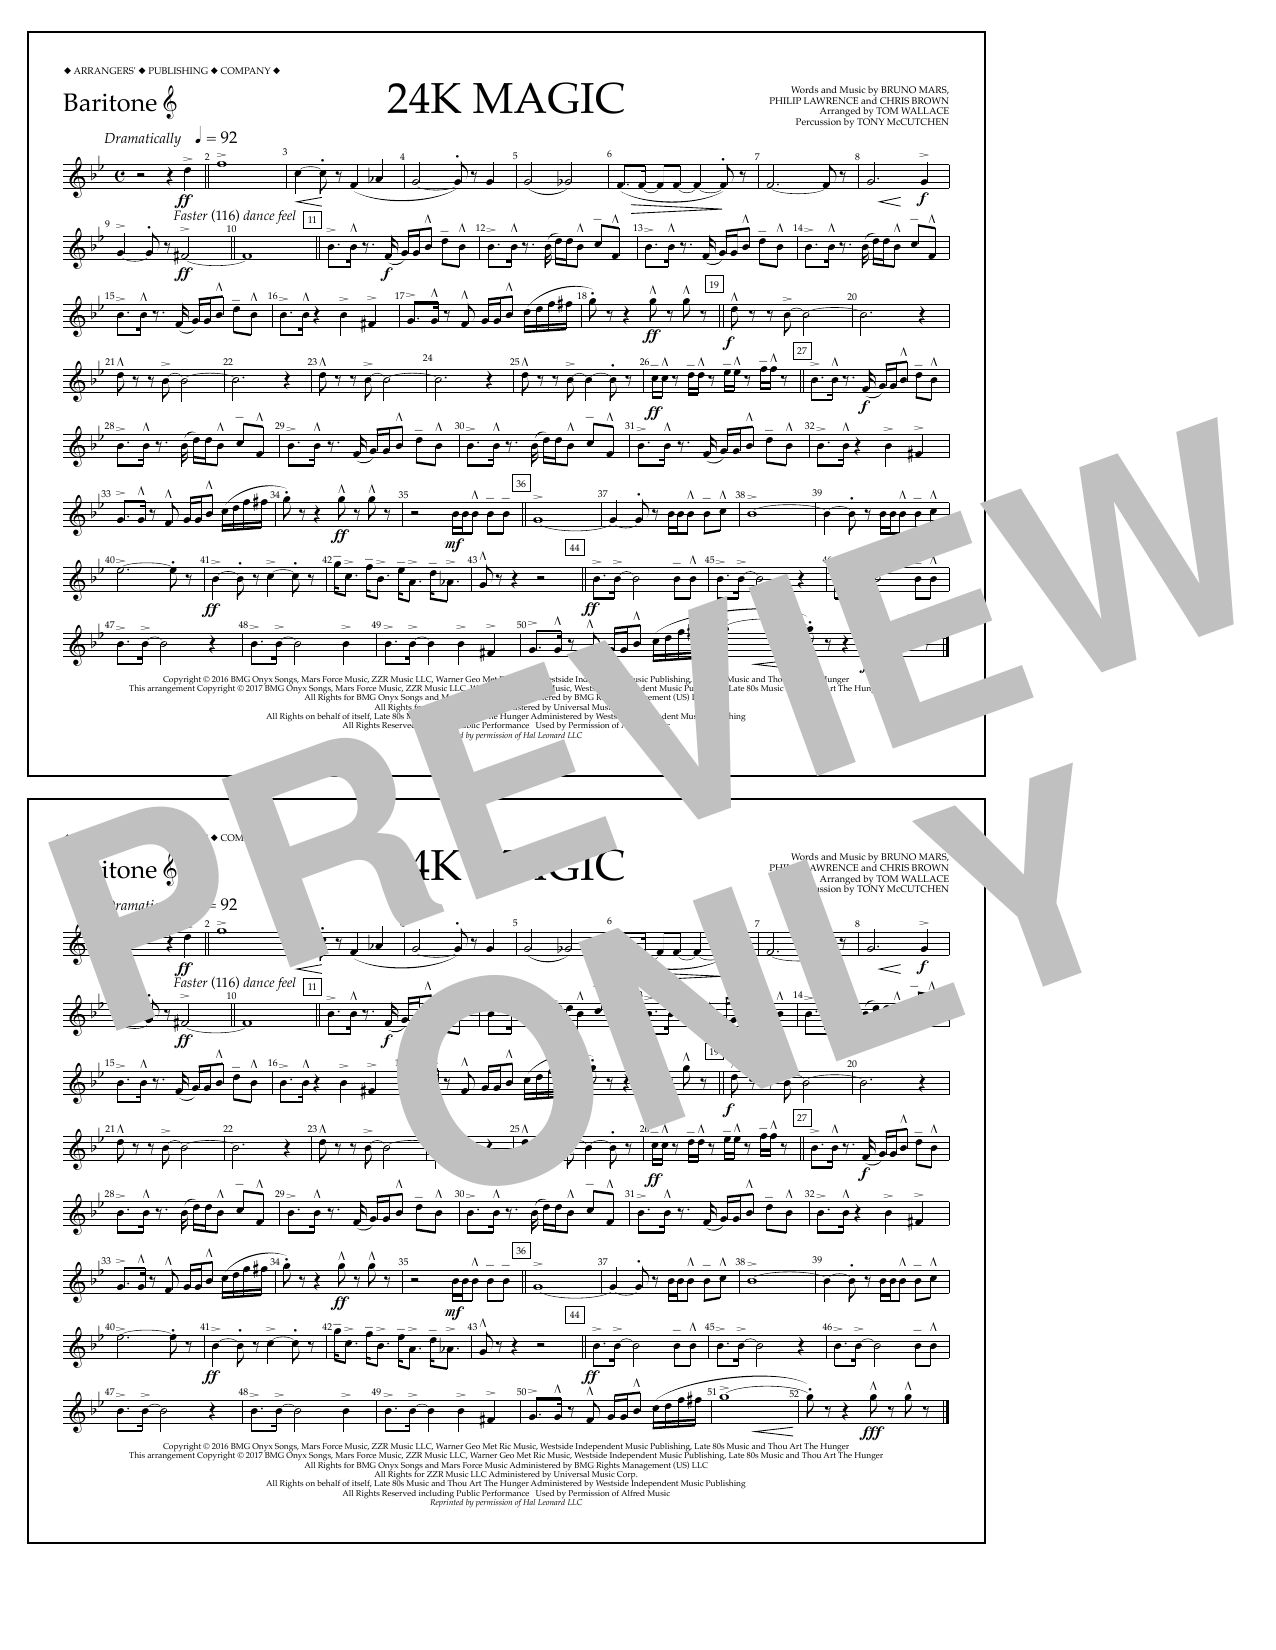 24K Magic - Baritone T.C. Sheet Music